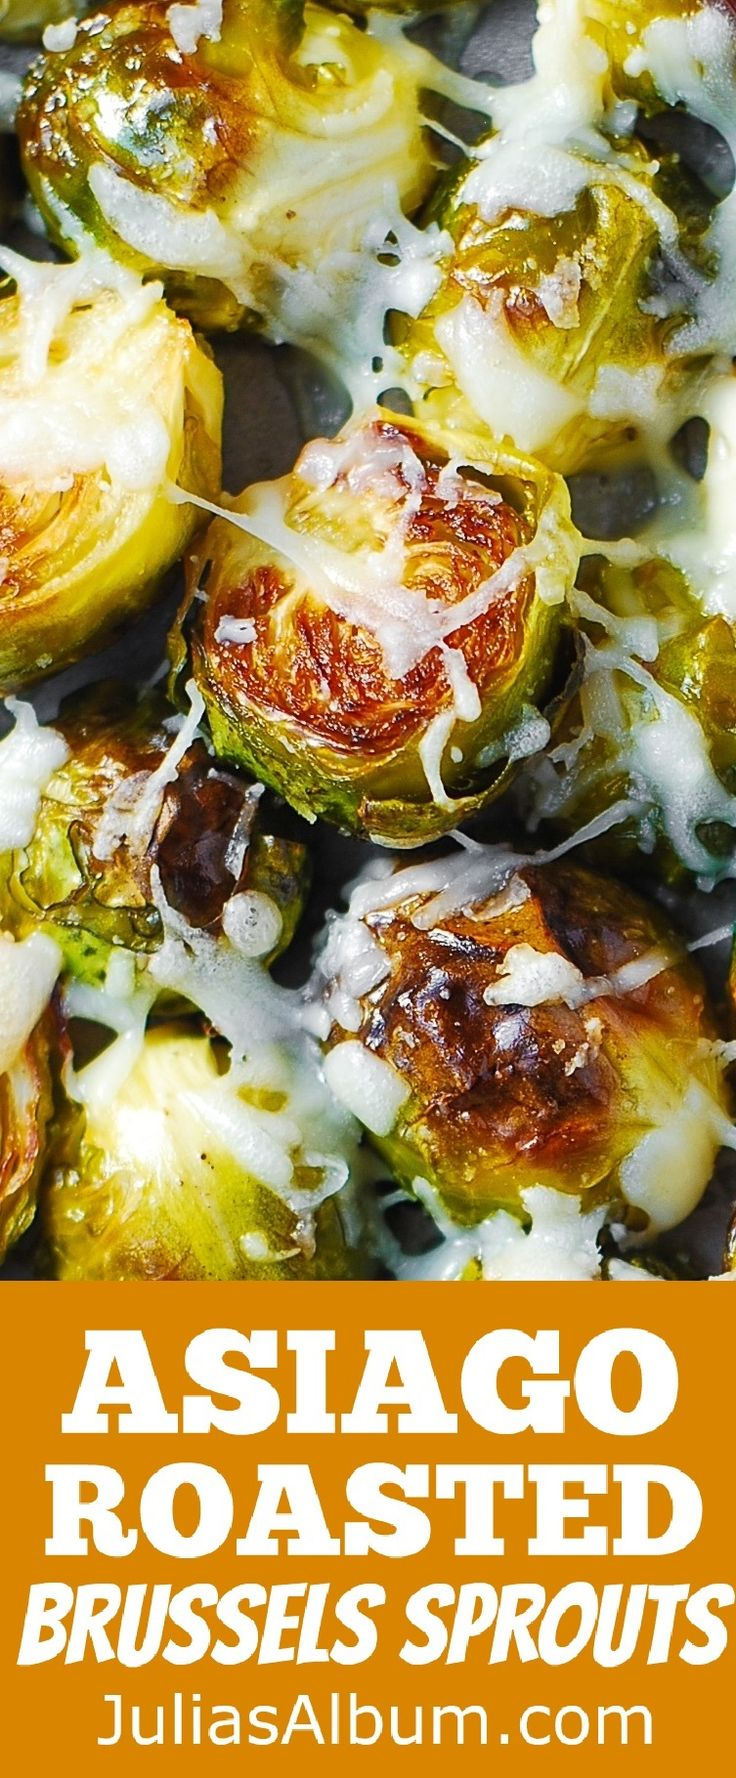 Asiago Roasted Brussels Sprouts - crunchy, delicious little bites covered in melted Asiago cheese goodness. Gluten free, healthy side dish.